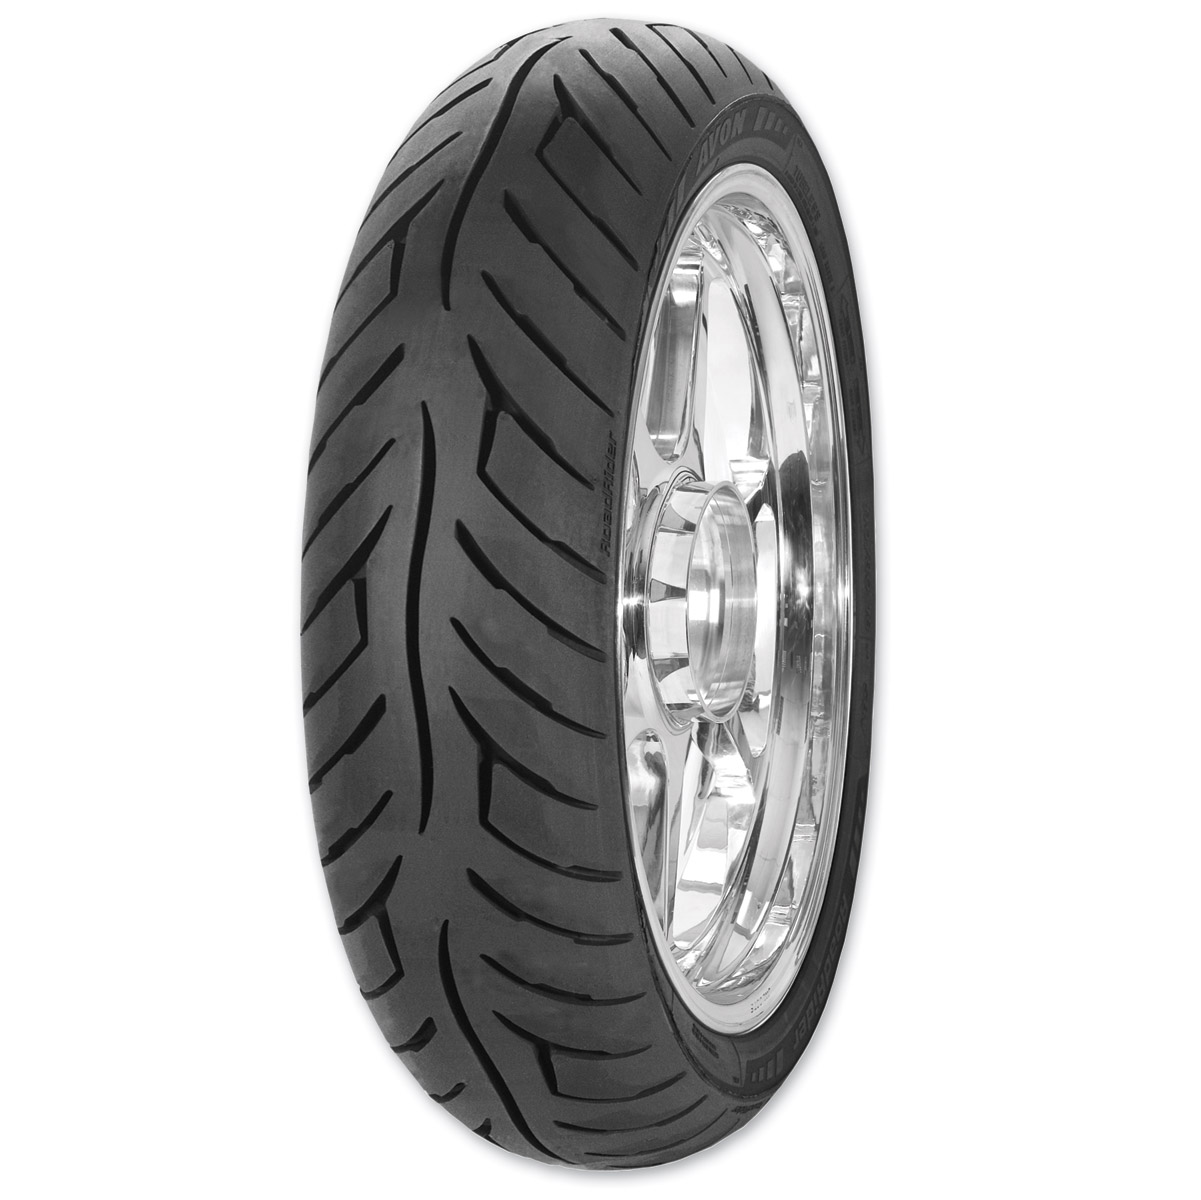 Avon AM26 Roadrider 150/70-18 Rear Tire